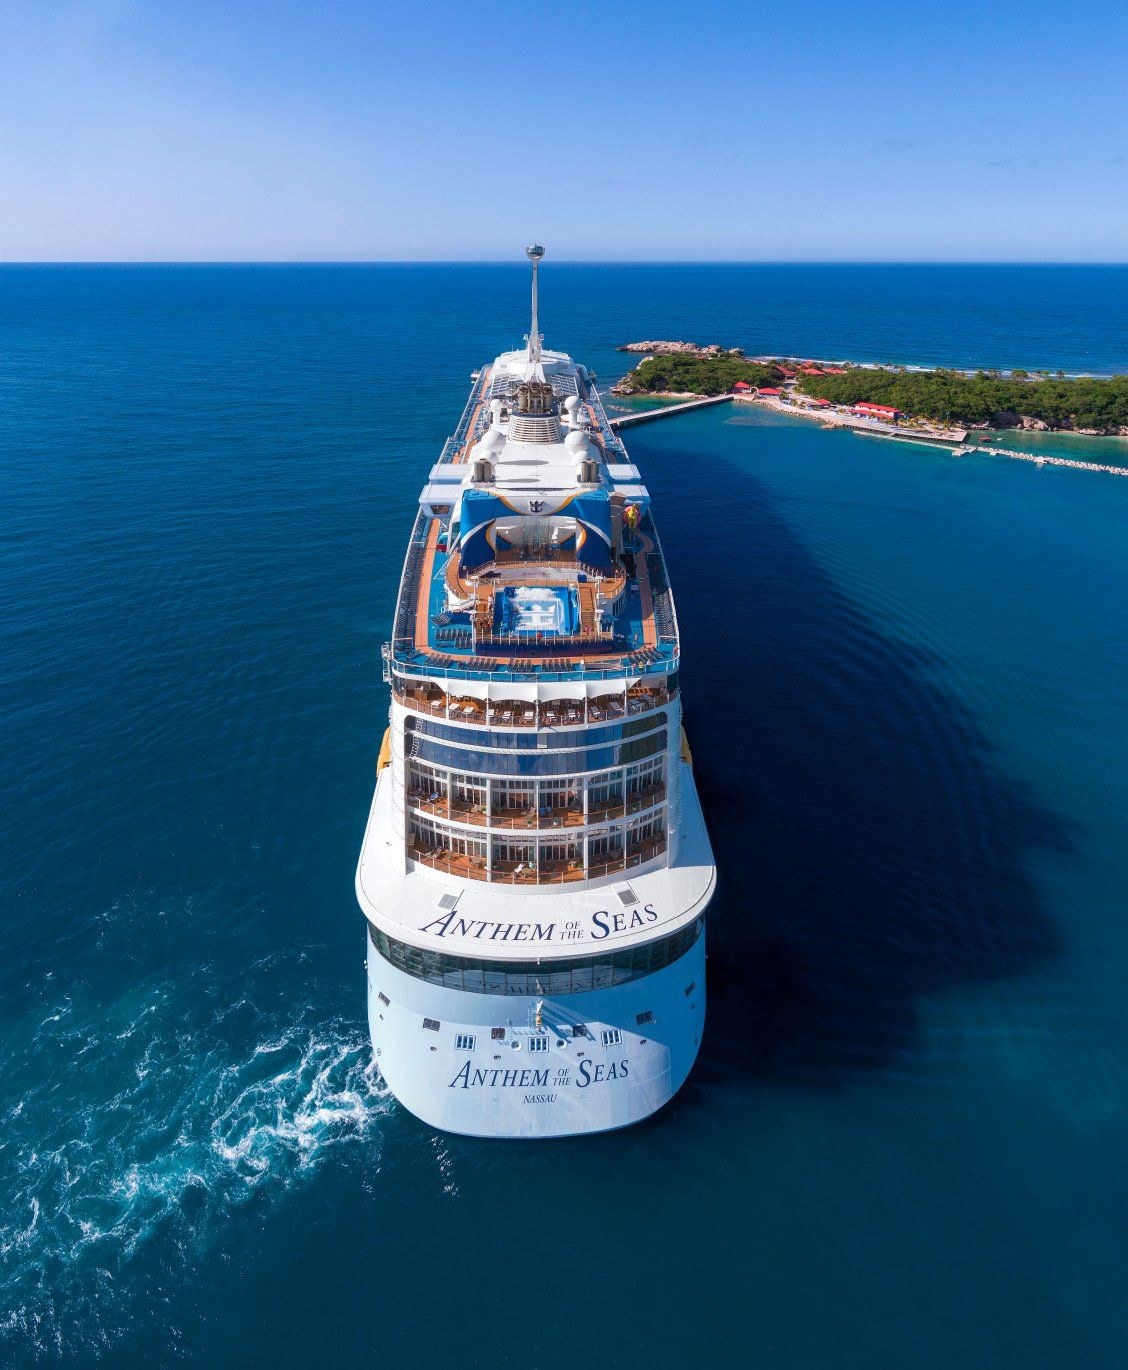 Anthem Of The Seas Every Day Onboard Anthem Of The Seas Is Like